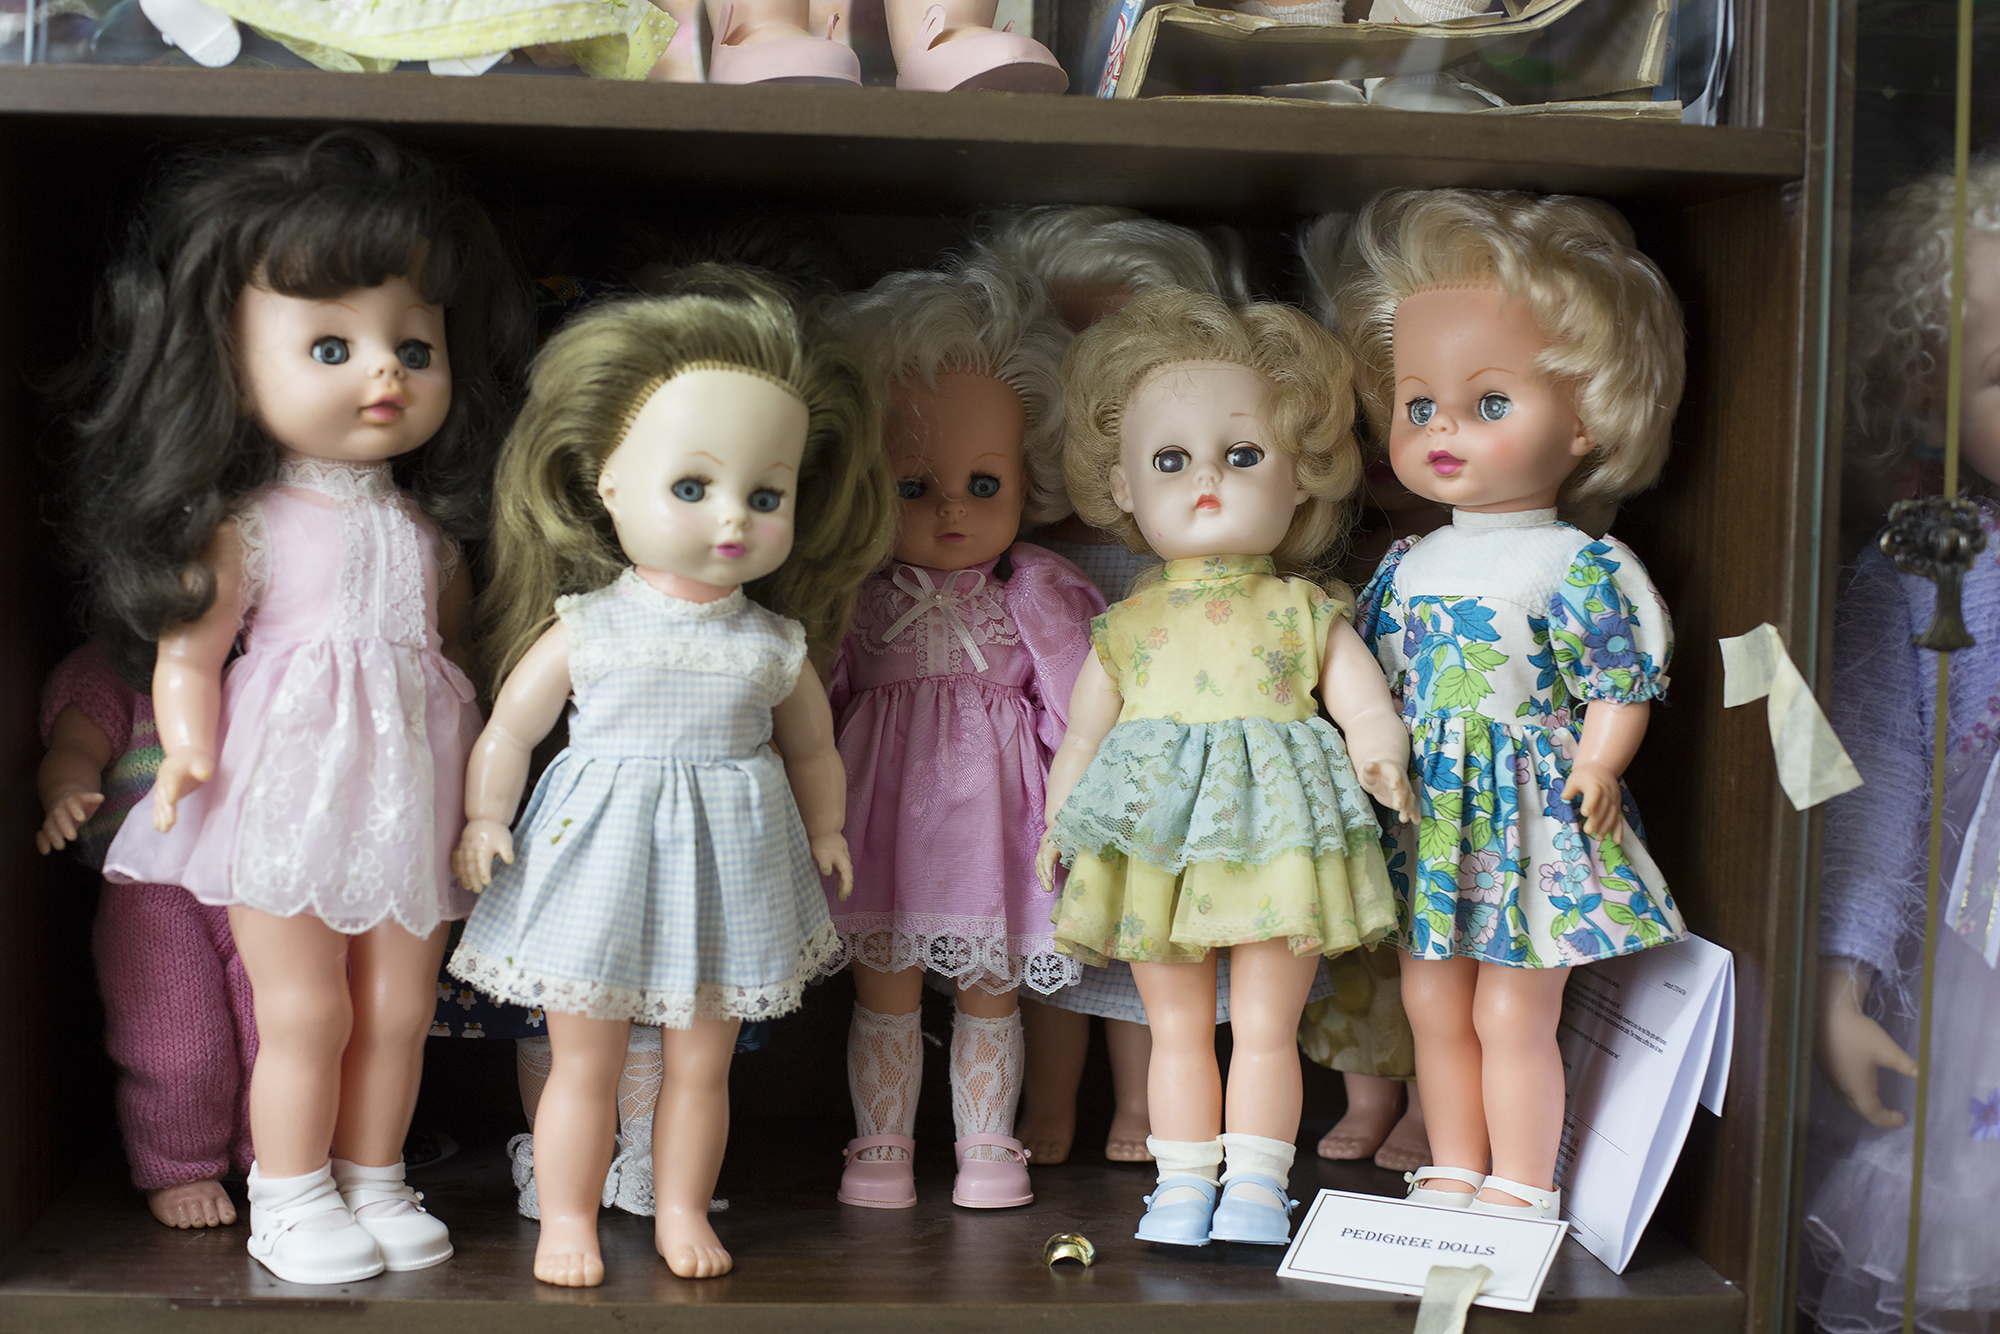 Pedigree dolls, the two on the right are wearing their original outfits 1970s